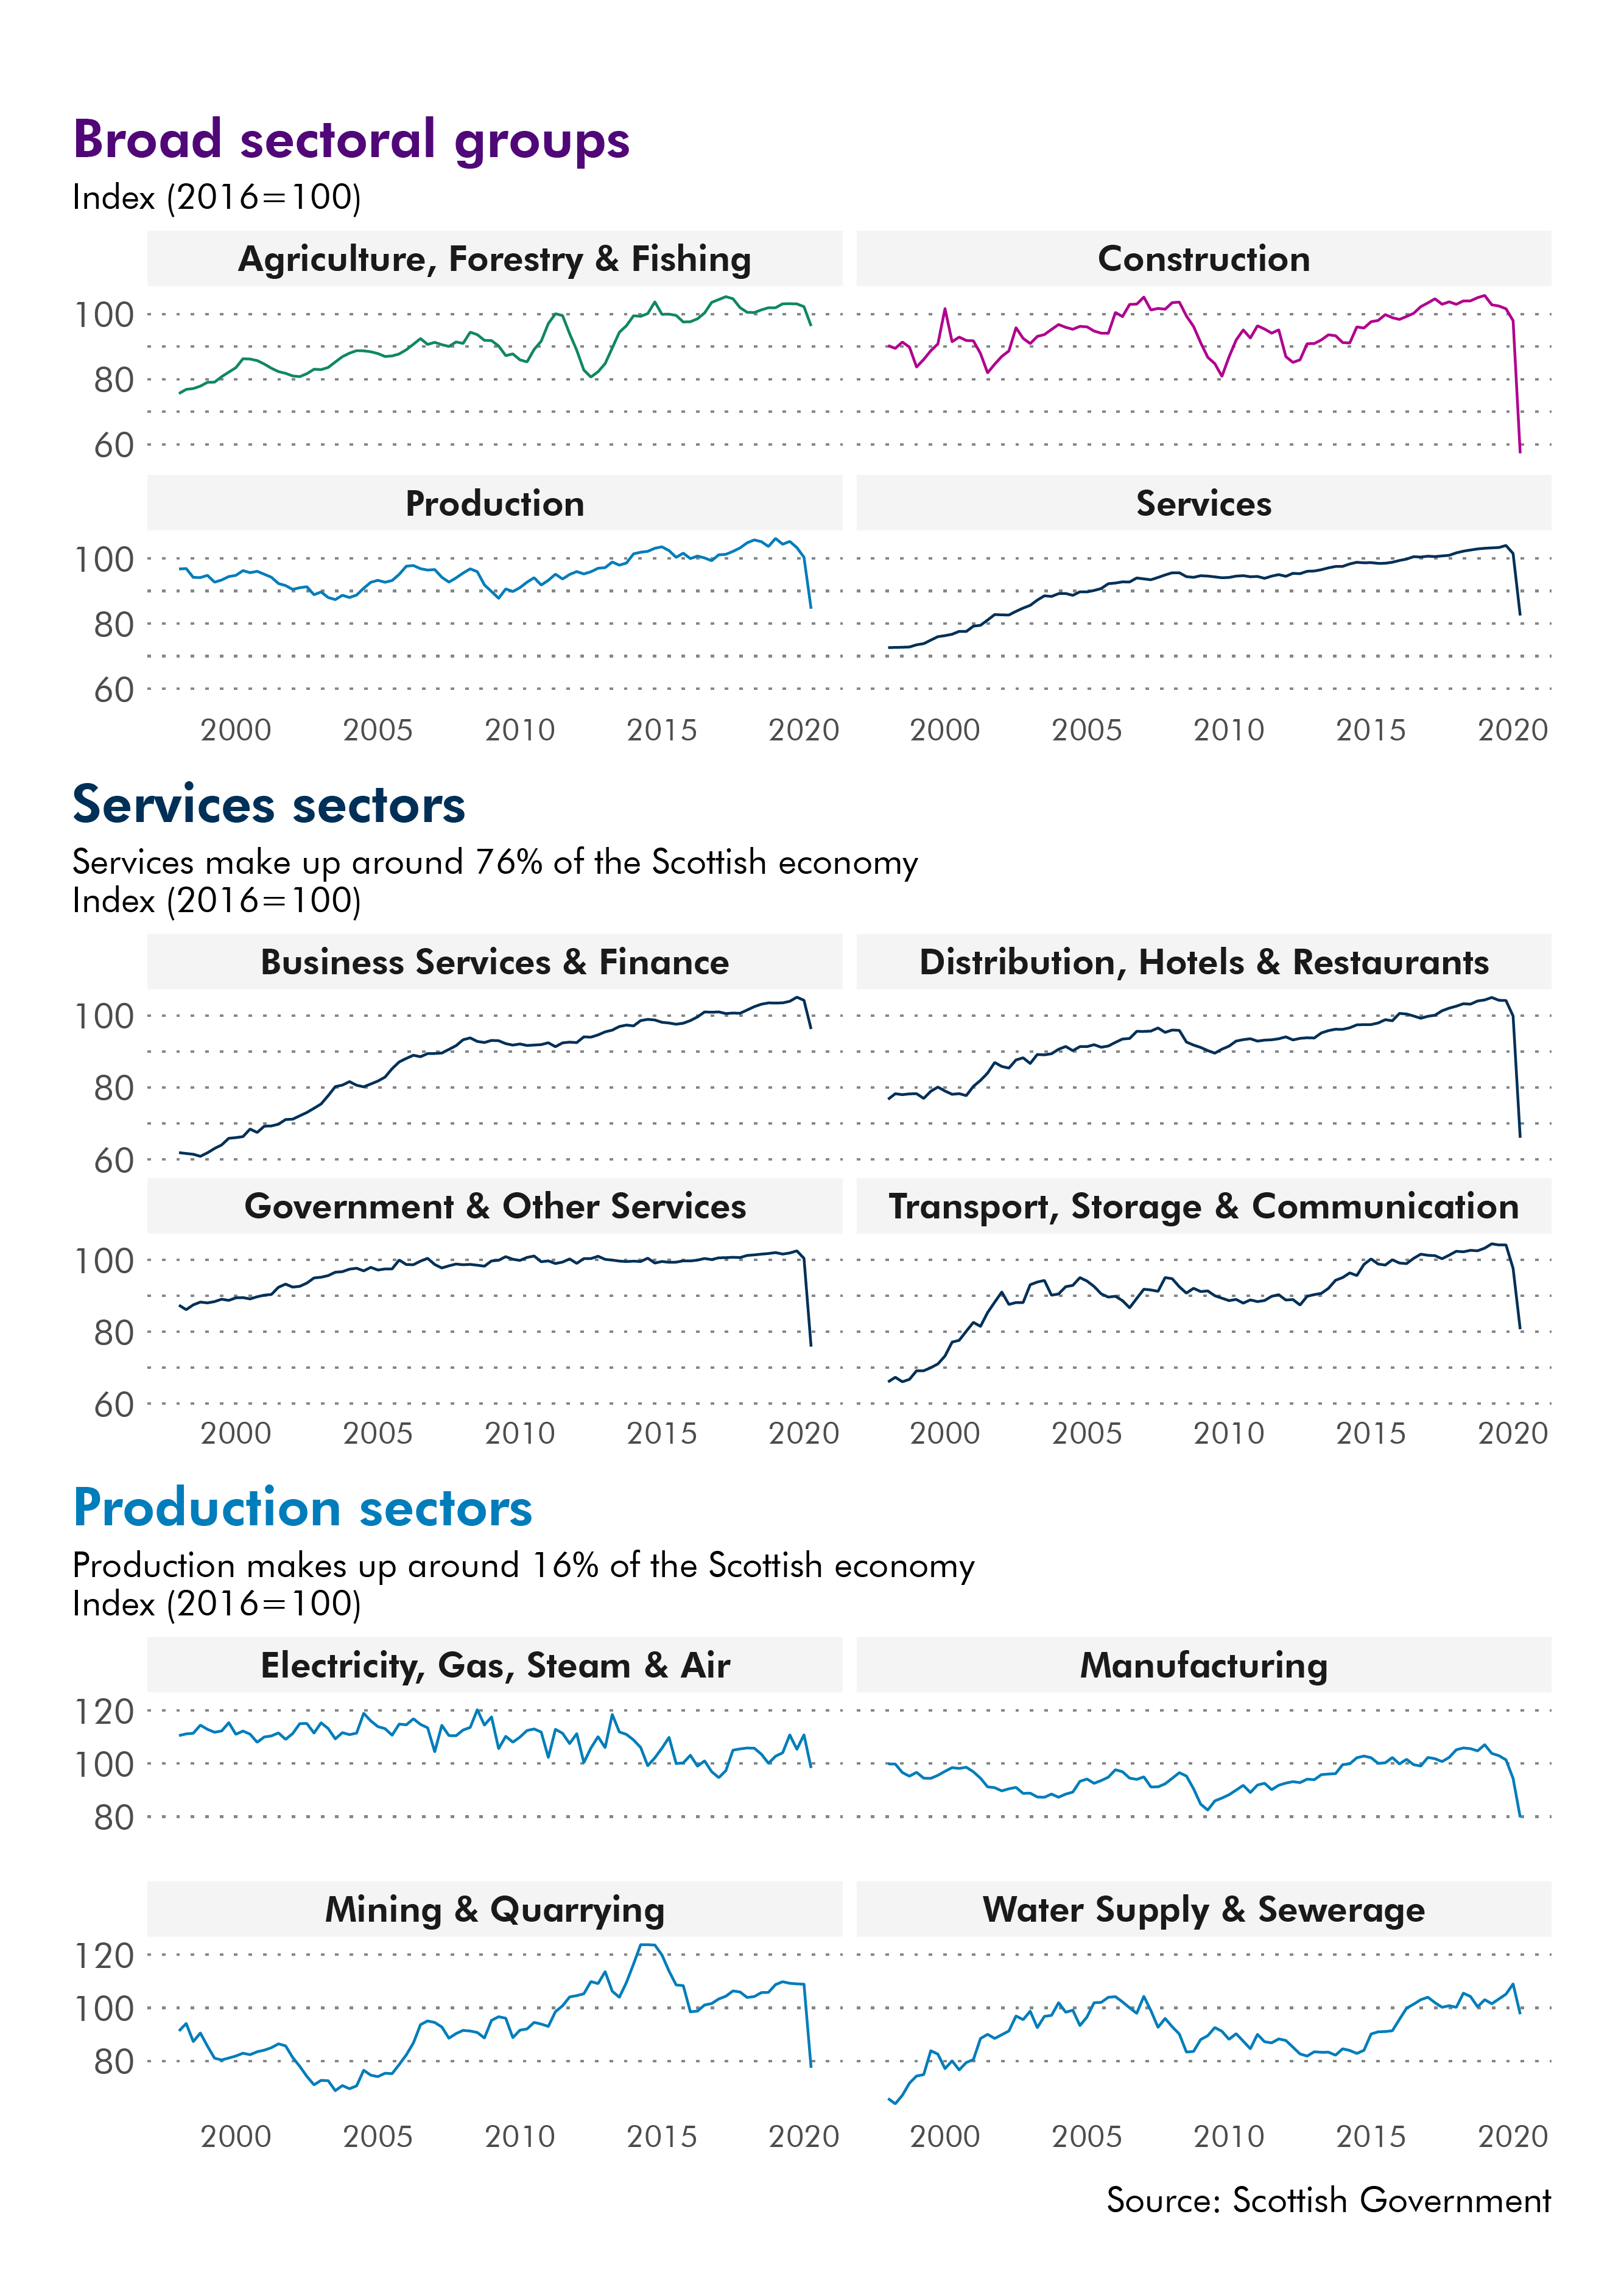 All sectors have seen large falls in output since the start of 2020. Of the broad sectors, construction has seen the largest fall. In general, service sectors have been harder hit than production sectors.